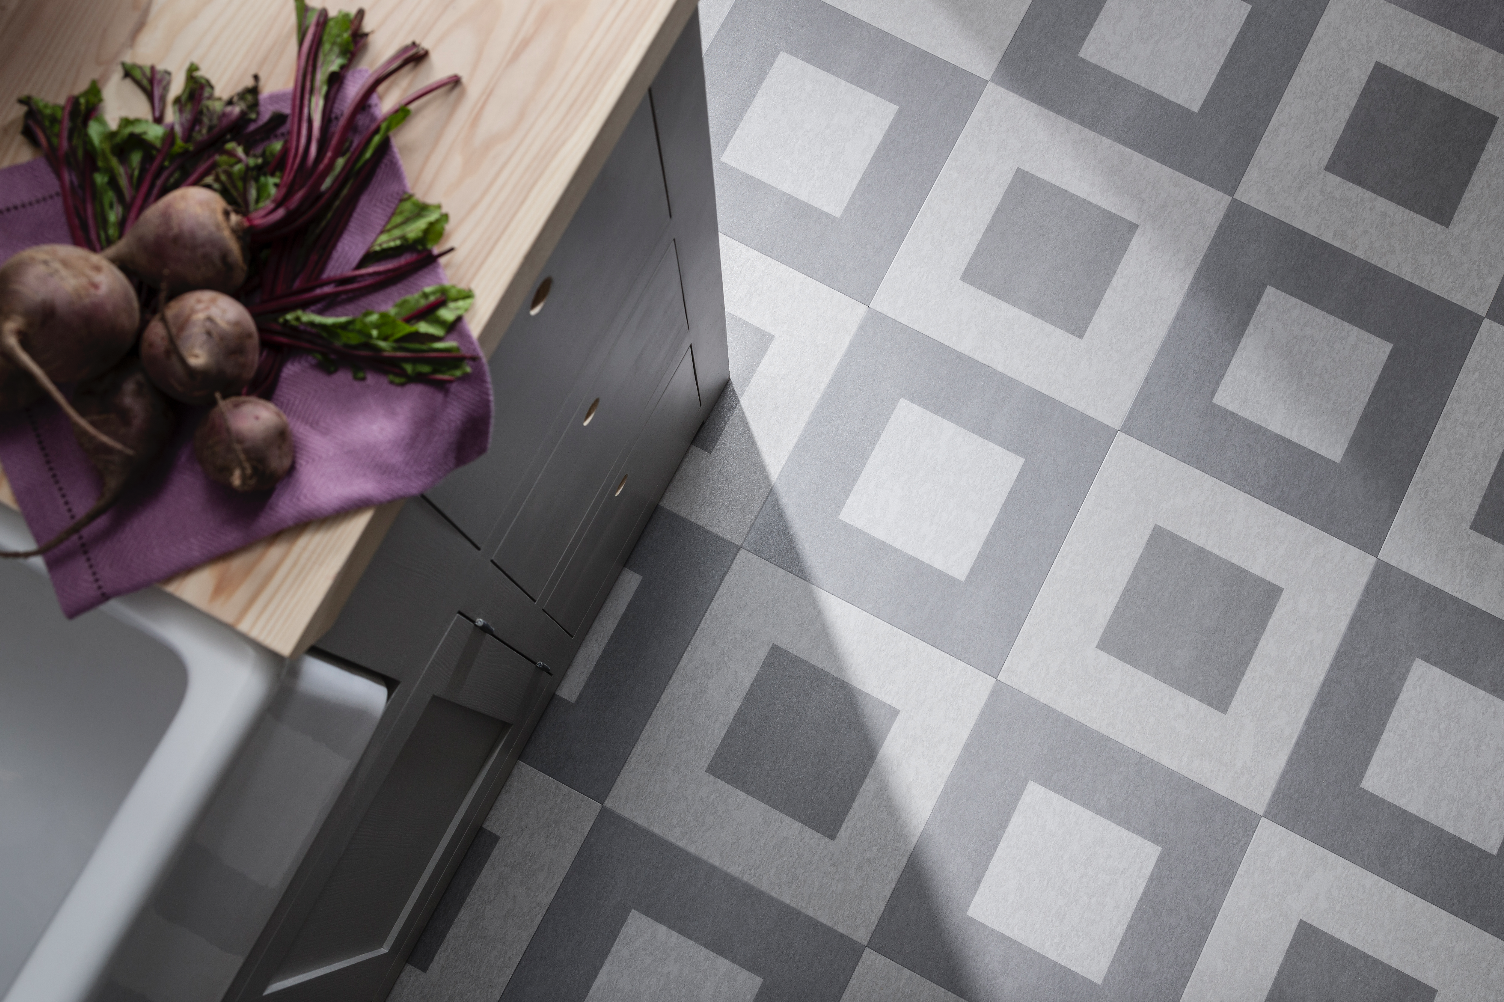 NEW IN: ORGANICS – The New Luxury Vinyl Tile Collection